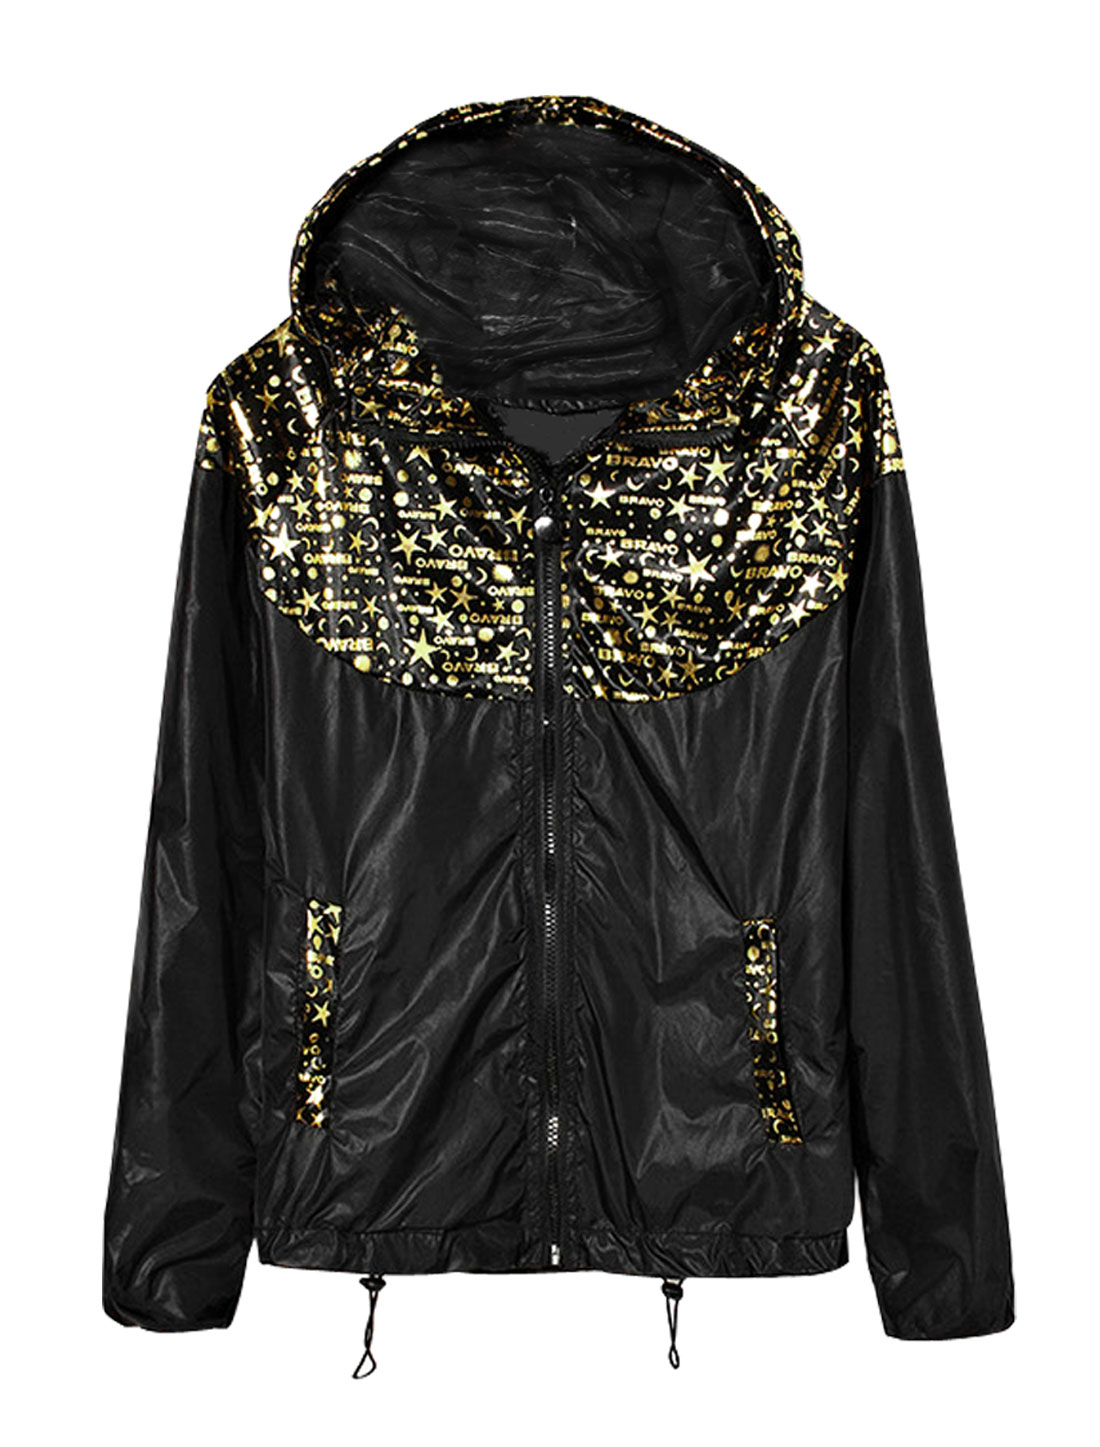 Men Stars Letters Prints Zip Up Long Sleeves Hooded Jacket Gold Tone Black S